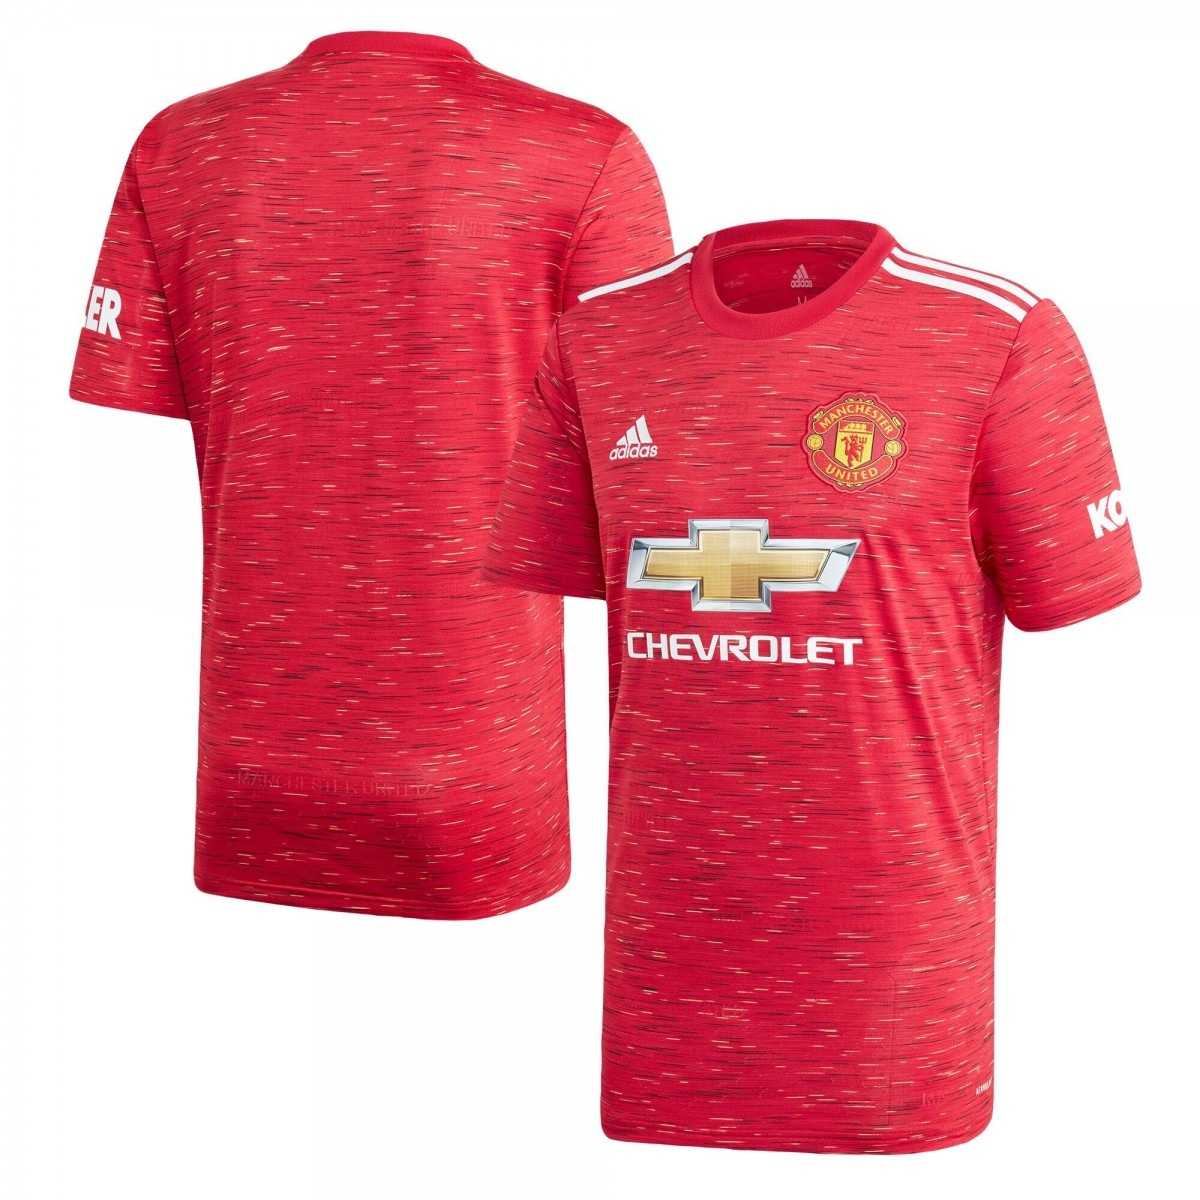 Manchester United 2020 21 Home Shirt